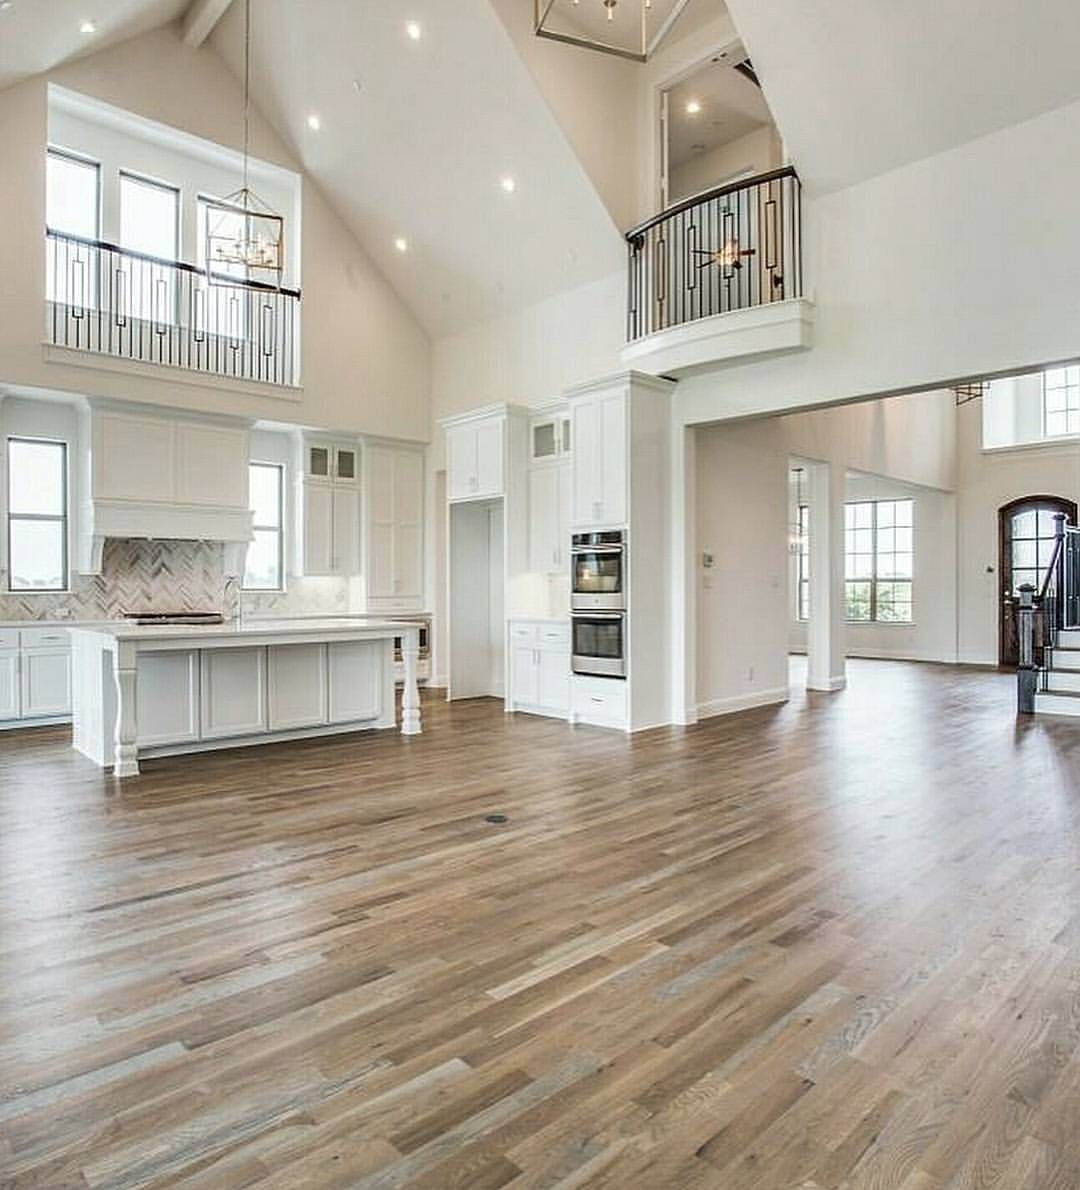 Most Popular Kitchen Flooring: Love This Open Concept Design?... Homes With Open Layouts